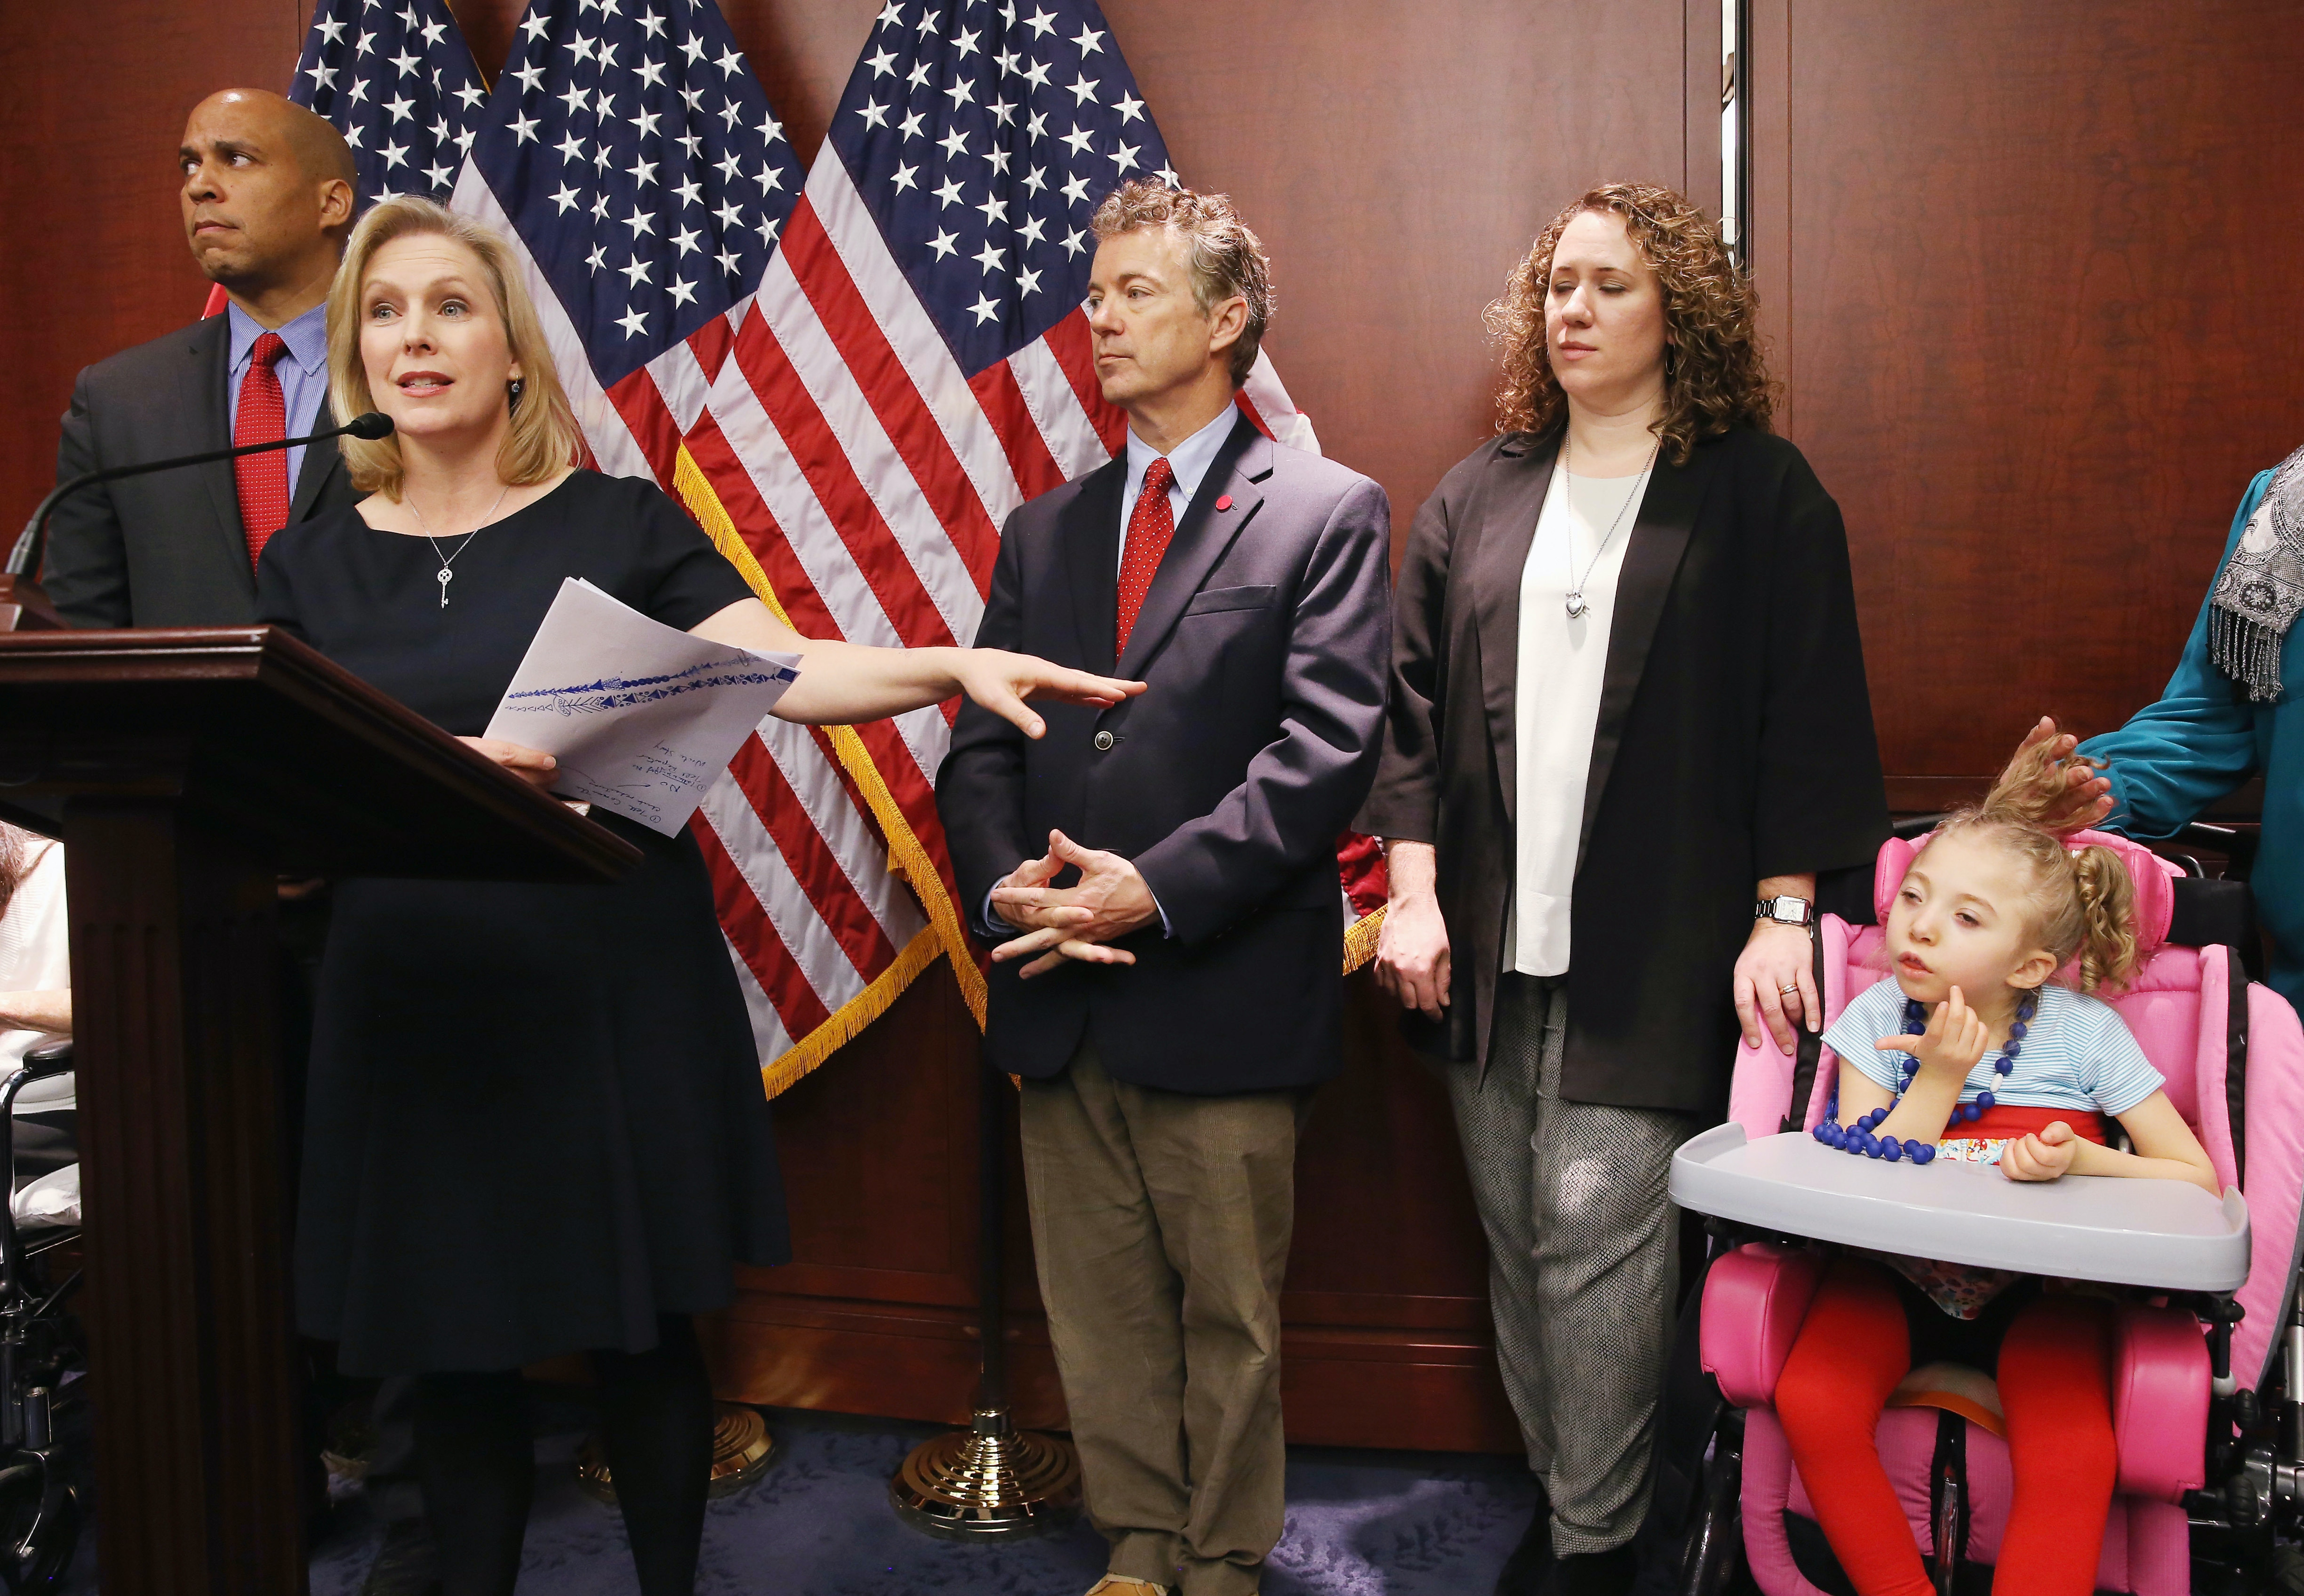 U.S. Senator Kirsten Gillibrand, at podium, speaks about medical Marijuana and how it could possibly help four-year-old Morgan Hintz who suffers from a rare form of epilepsy.